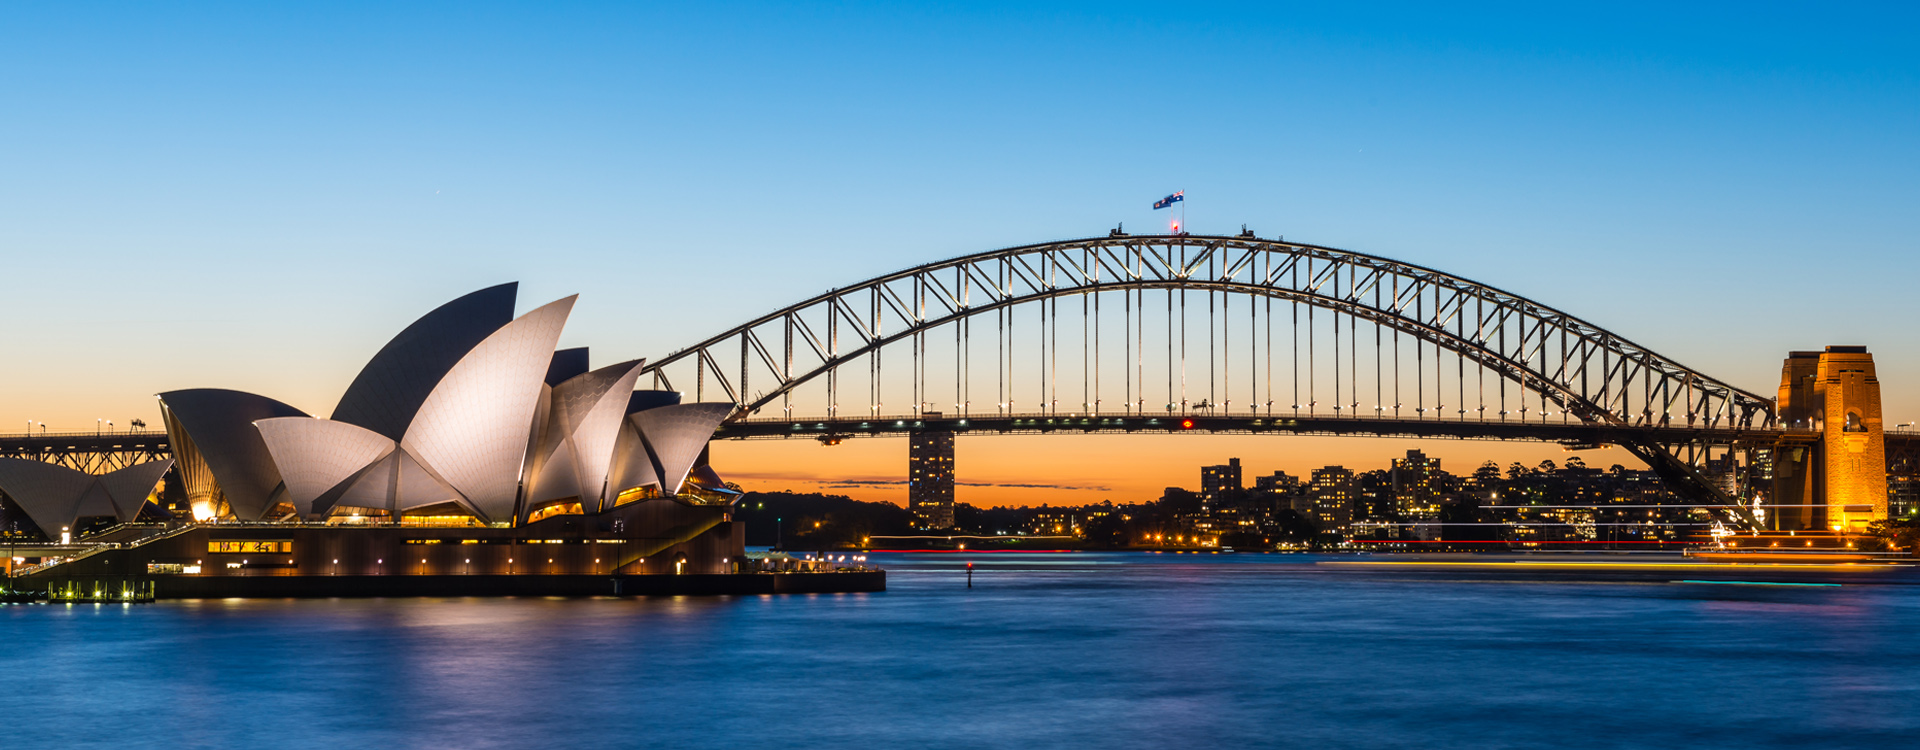 The Sydney Opera House with Harbour bridge in Sydney Australia, Designed by Danish architect Jorn Utzon